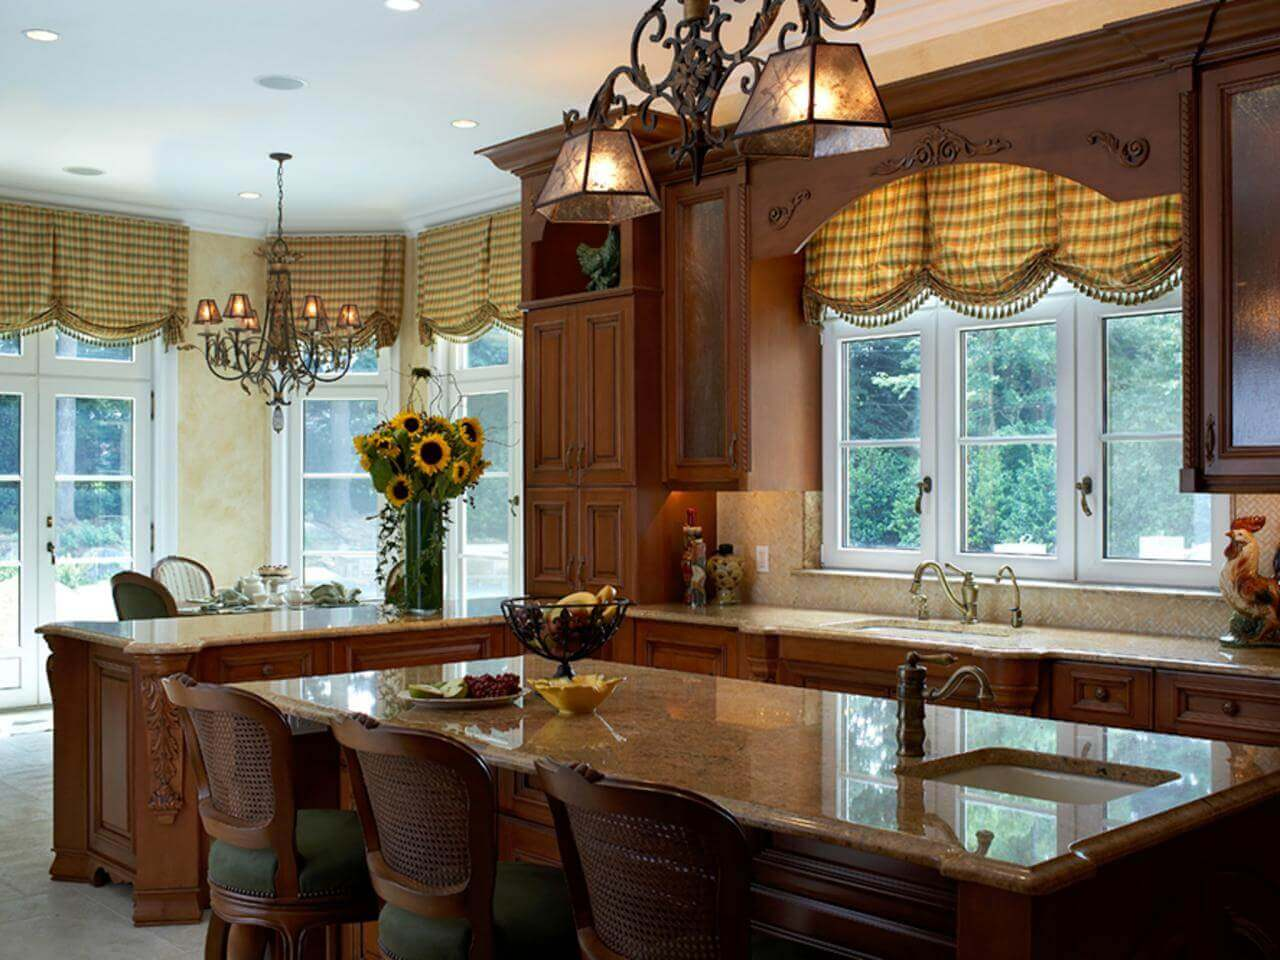 As with painting of the walls and other elements, adding luxury kitchen window curtains to cover the walls is one interesting and effective way to bring style and elegance into the kitchen space